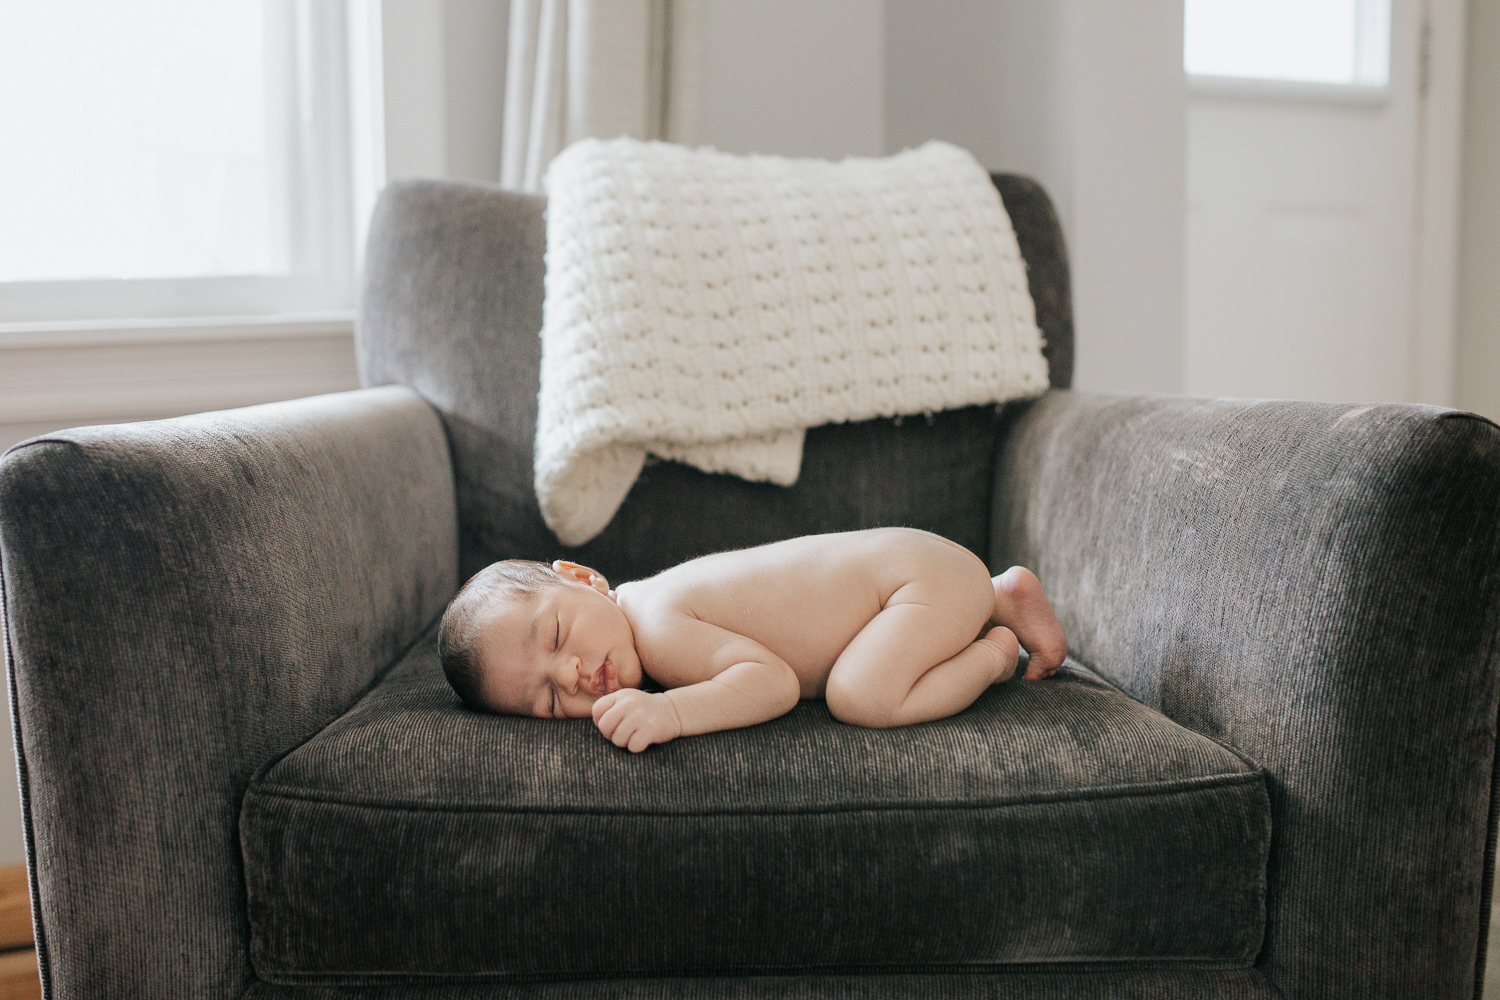 2 week old baby boy with dark hair sleeping on stomach on dark grey chair - York Region In-Home Photography